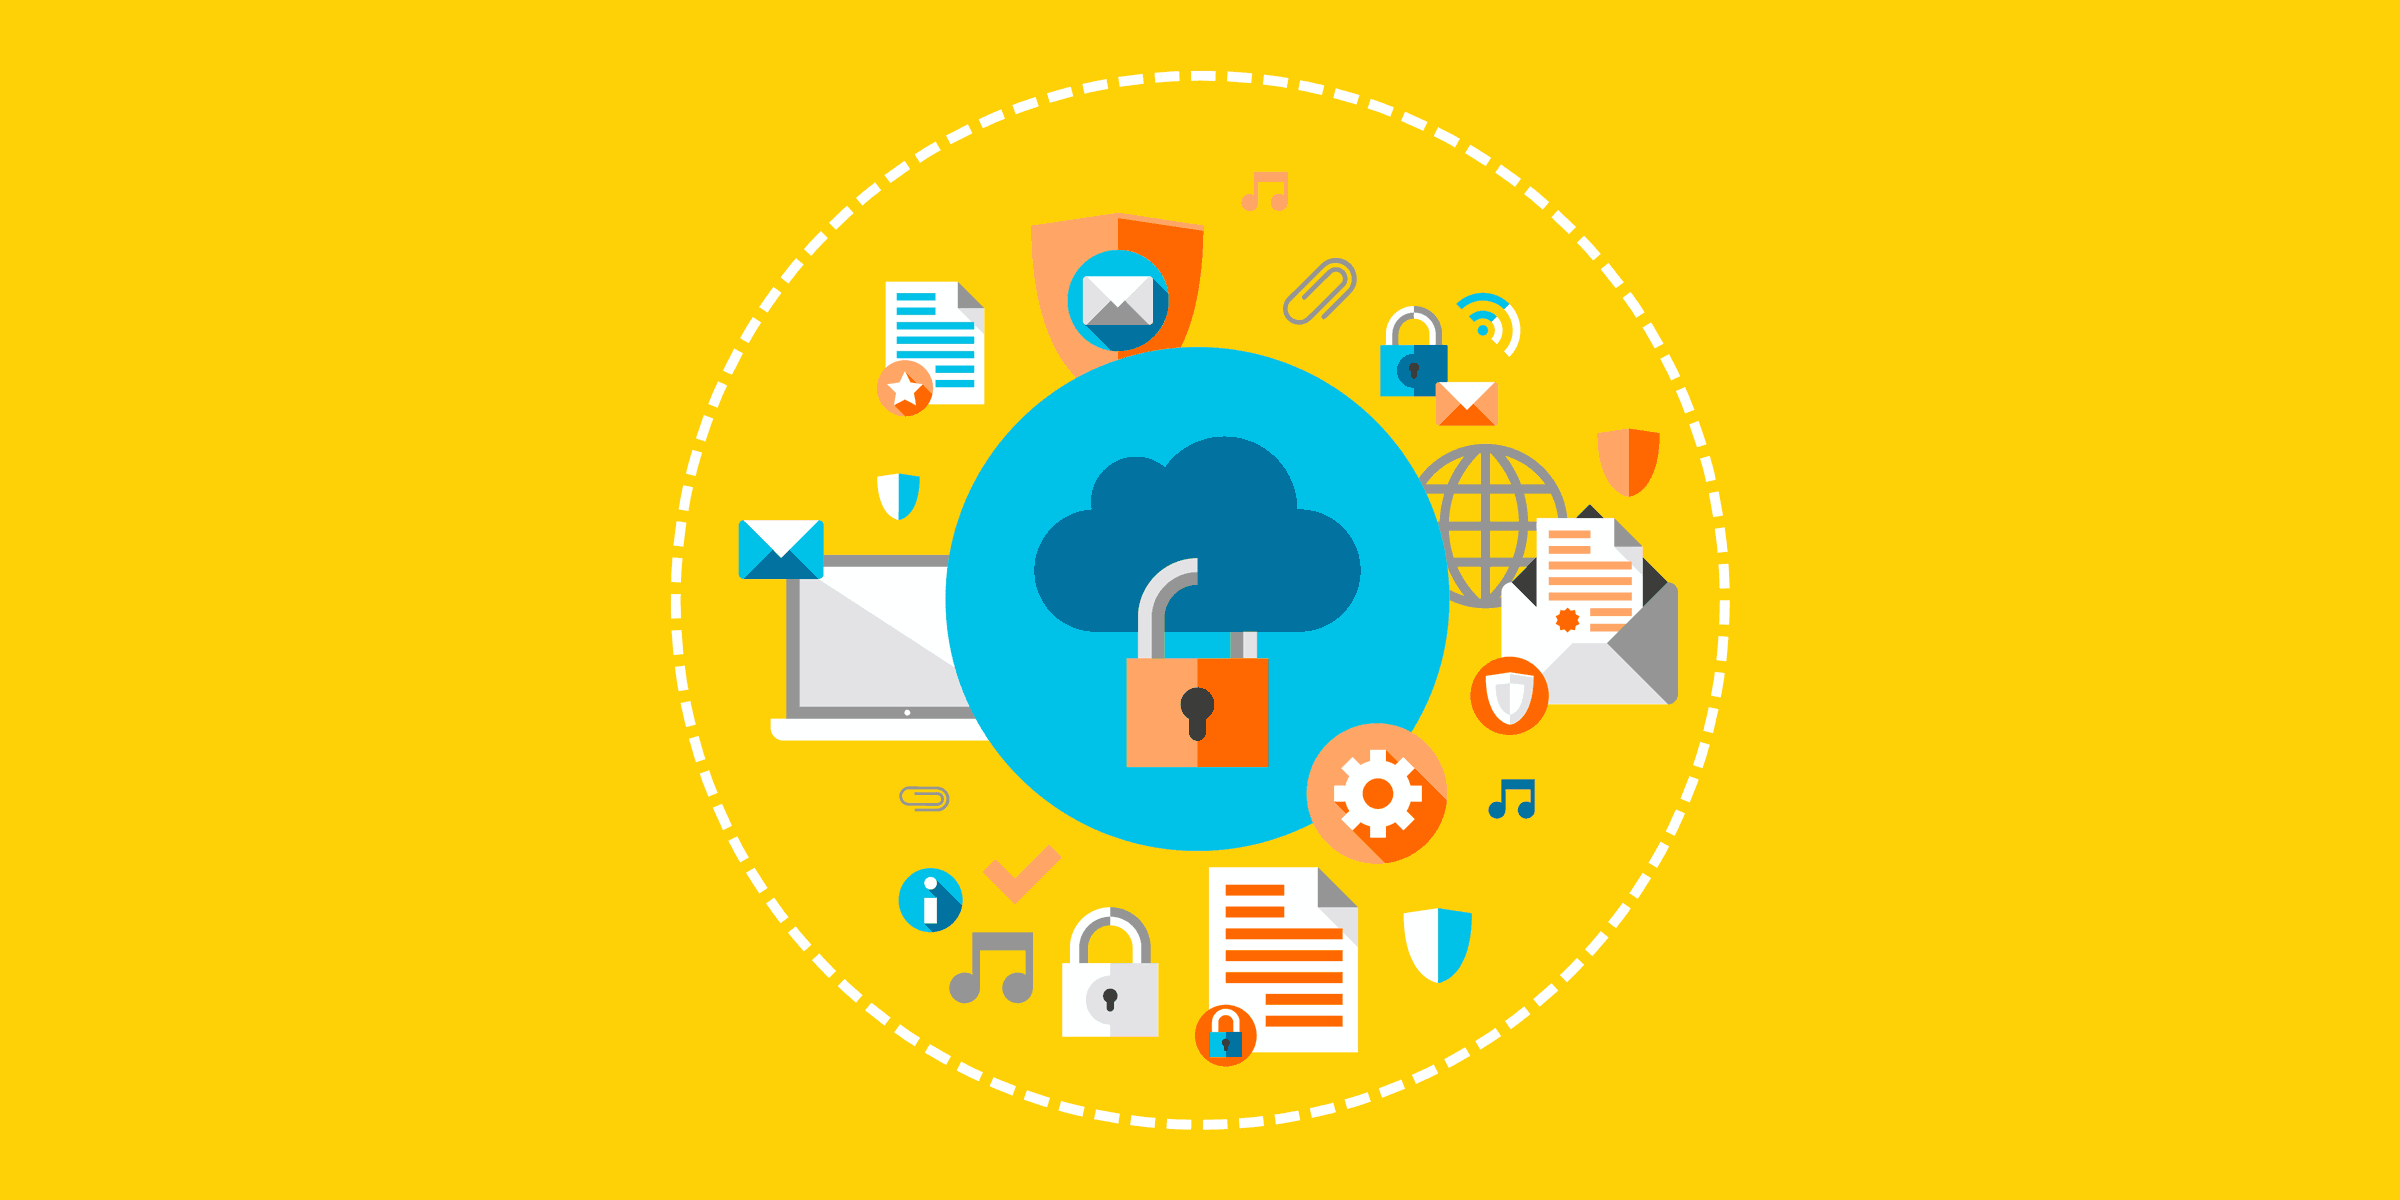 illustration of a lock in a cloud surrounded by an open letter, gear, musical notes, email message, attachment, Wi-Fi symbol, shield, and check mark, representing the educational broadband service spectrum and the value it provides to nonprofits and schools